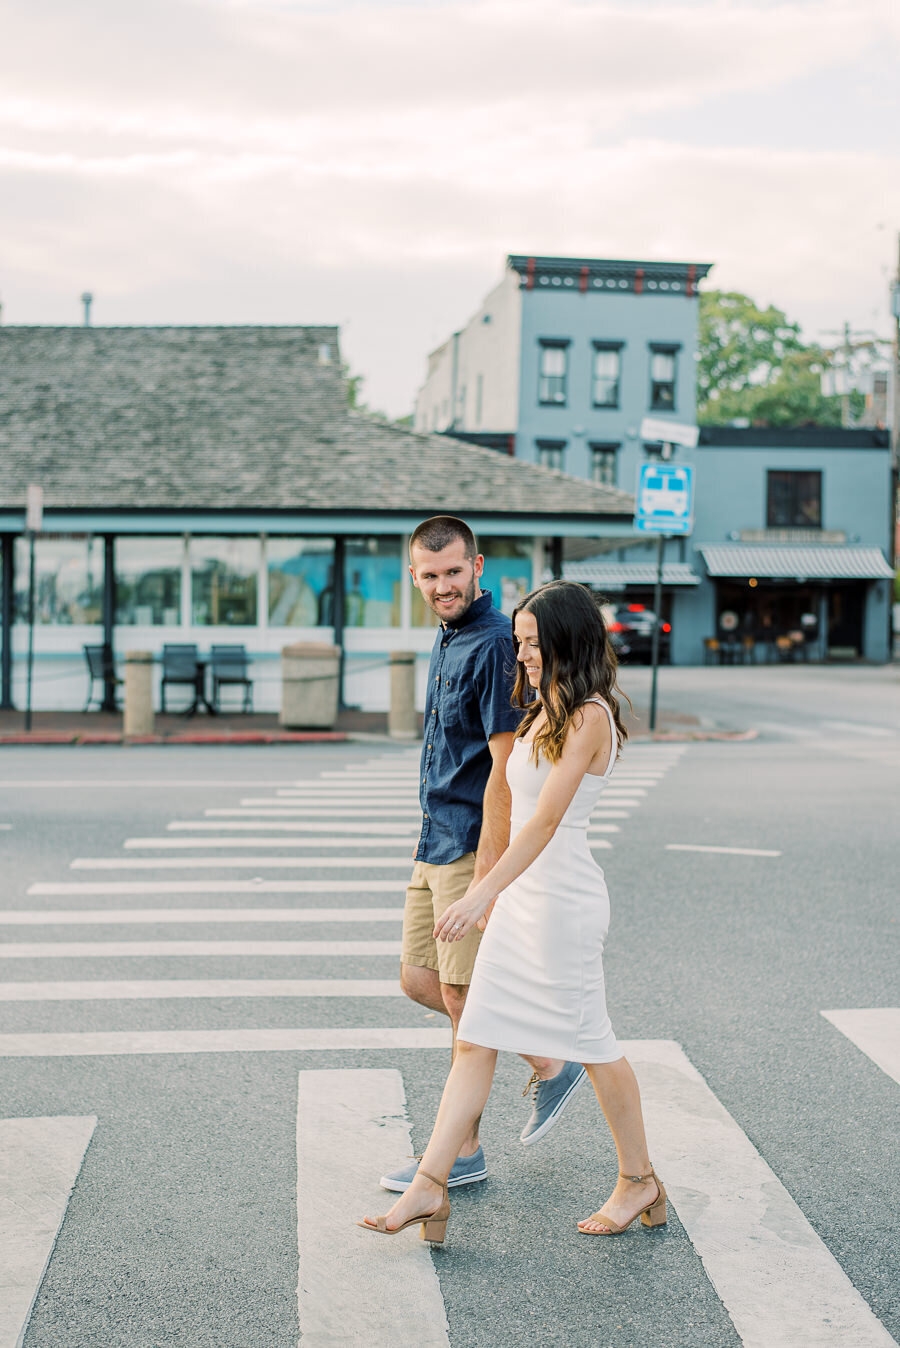 Downtown_Annapolis_Engagement_Session_Megan_Harris_Photography-12